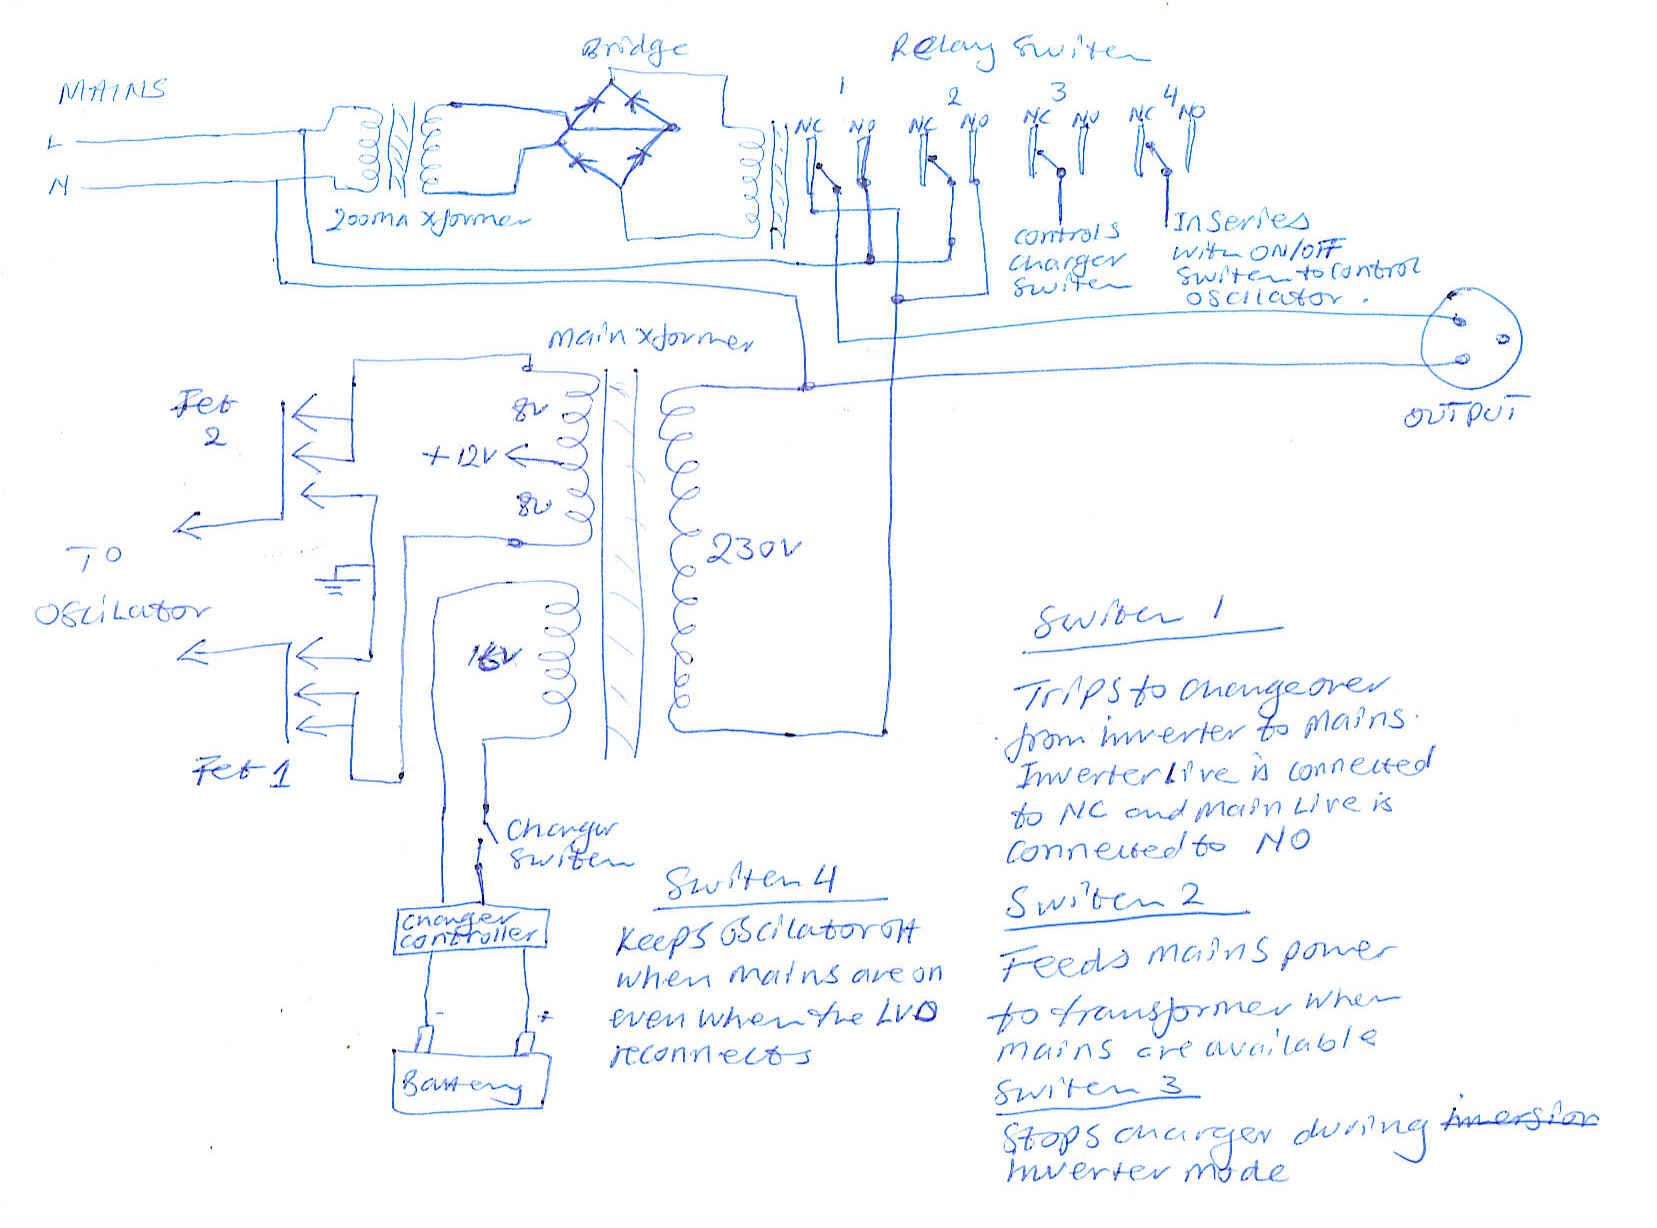 Inverter Charger Wiring Diagram Iso 1048721995 Passenger Cars C Harging A Battery Through 3 Or More Stage Switch Mode From An Generator